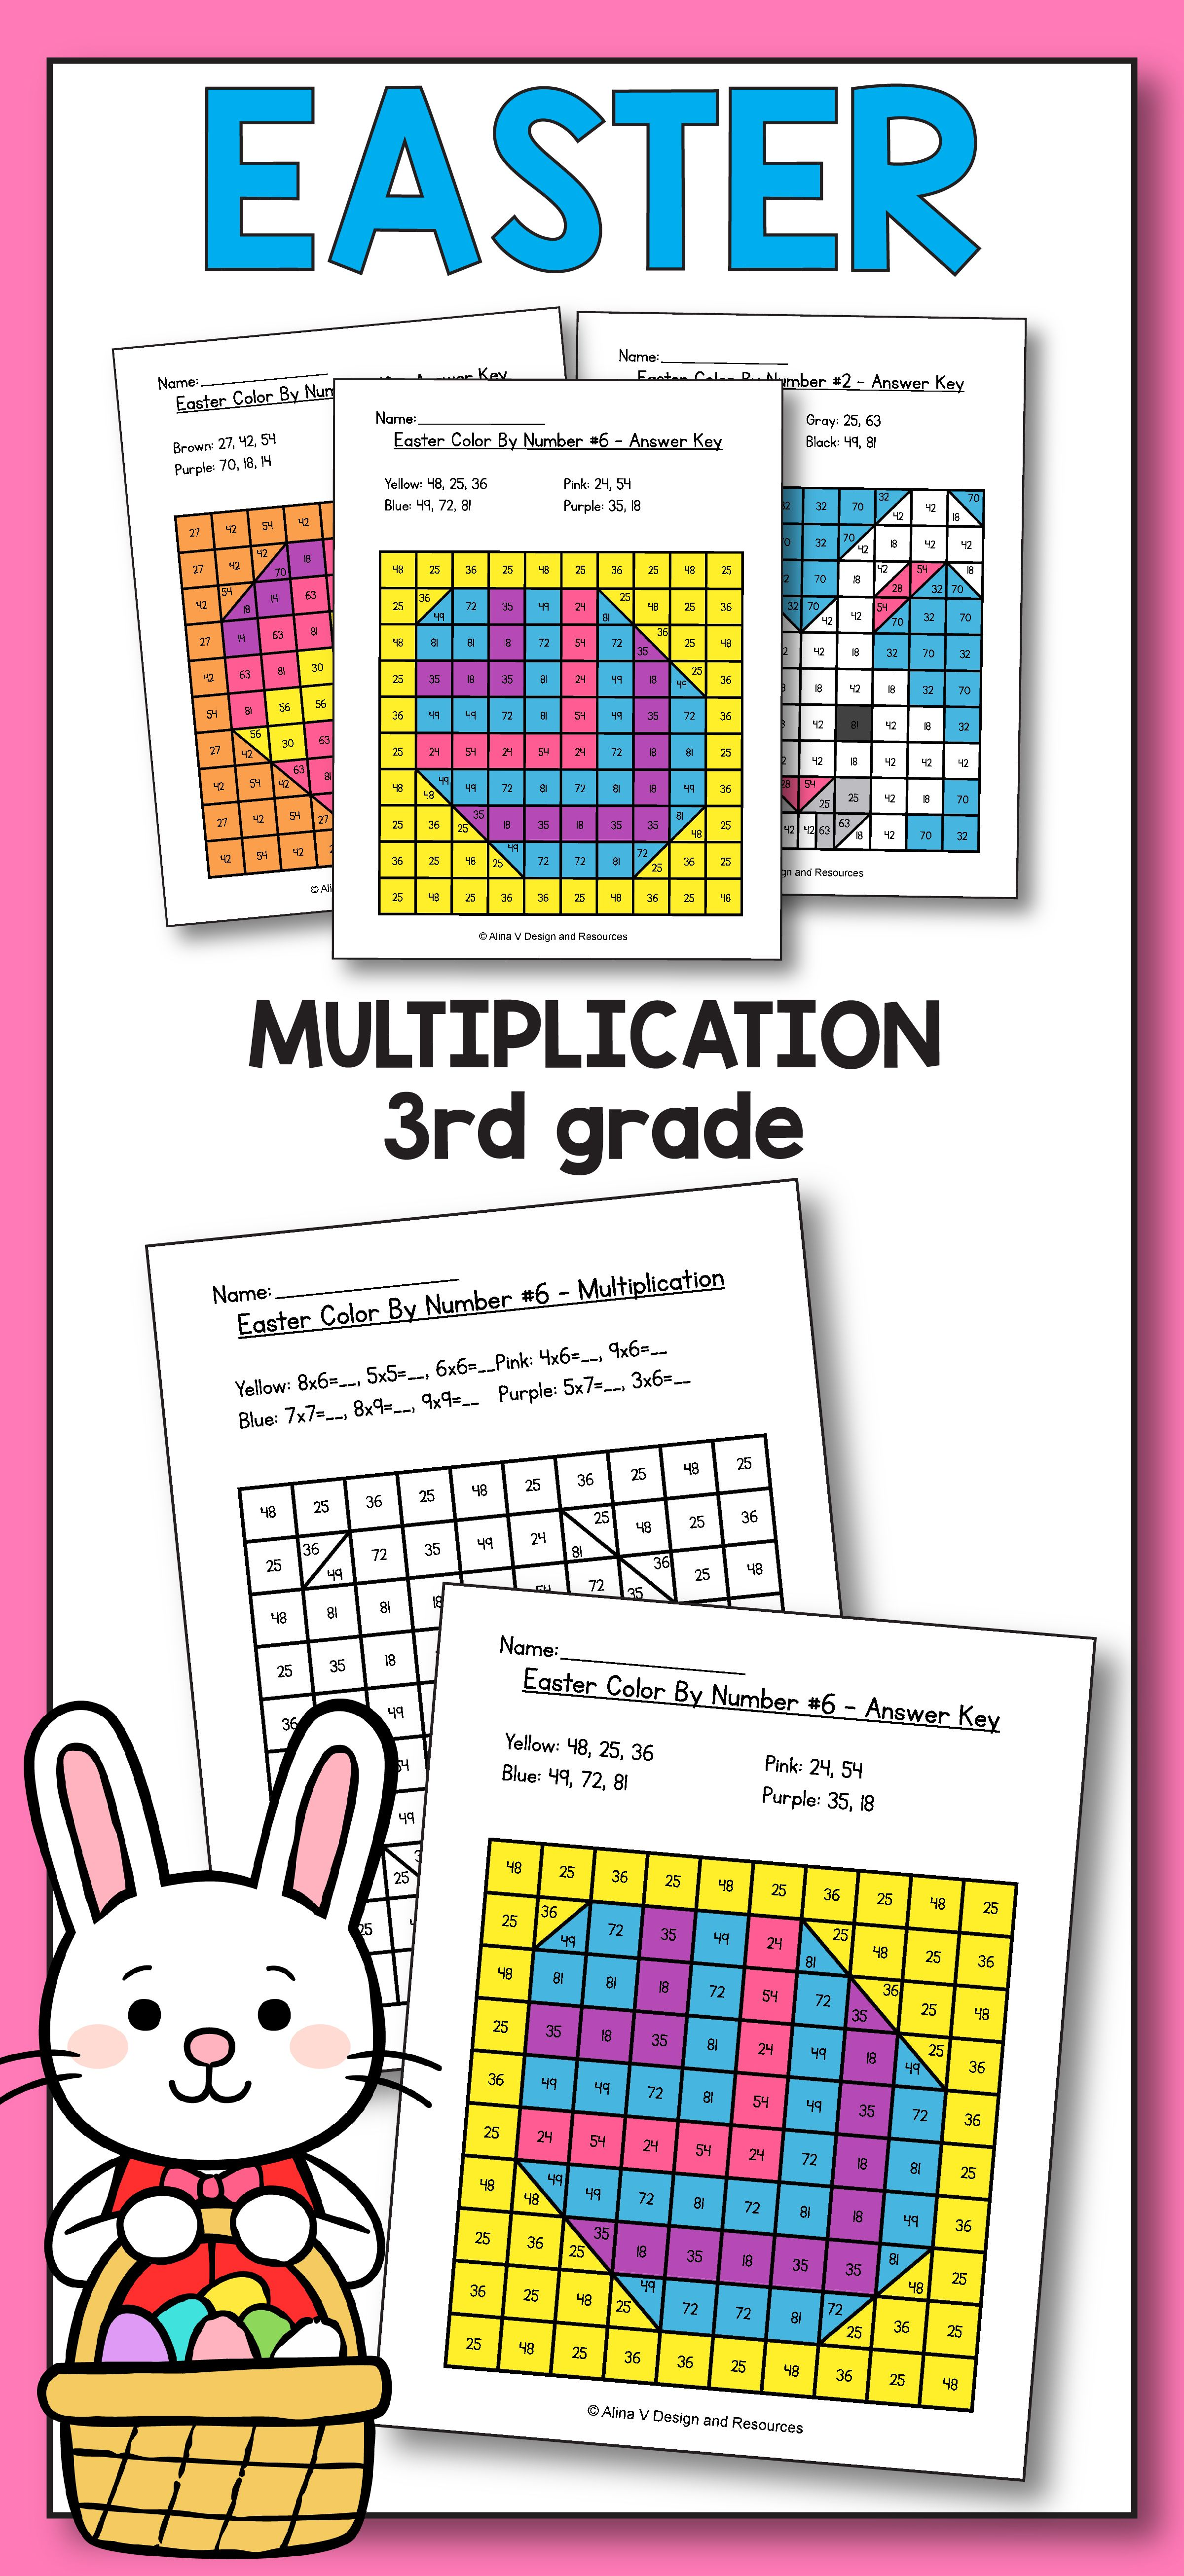 hight resolution of Easter Multiplication Math Worksheets for 3rd grade kids is fun with these  hundreds chart printables…   Easter math